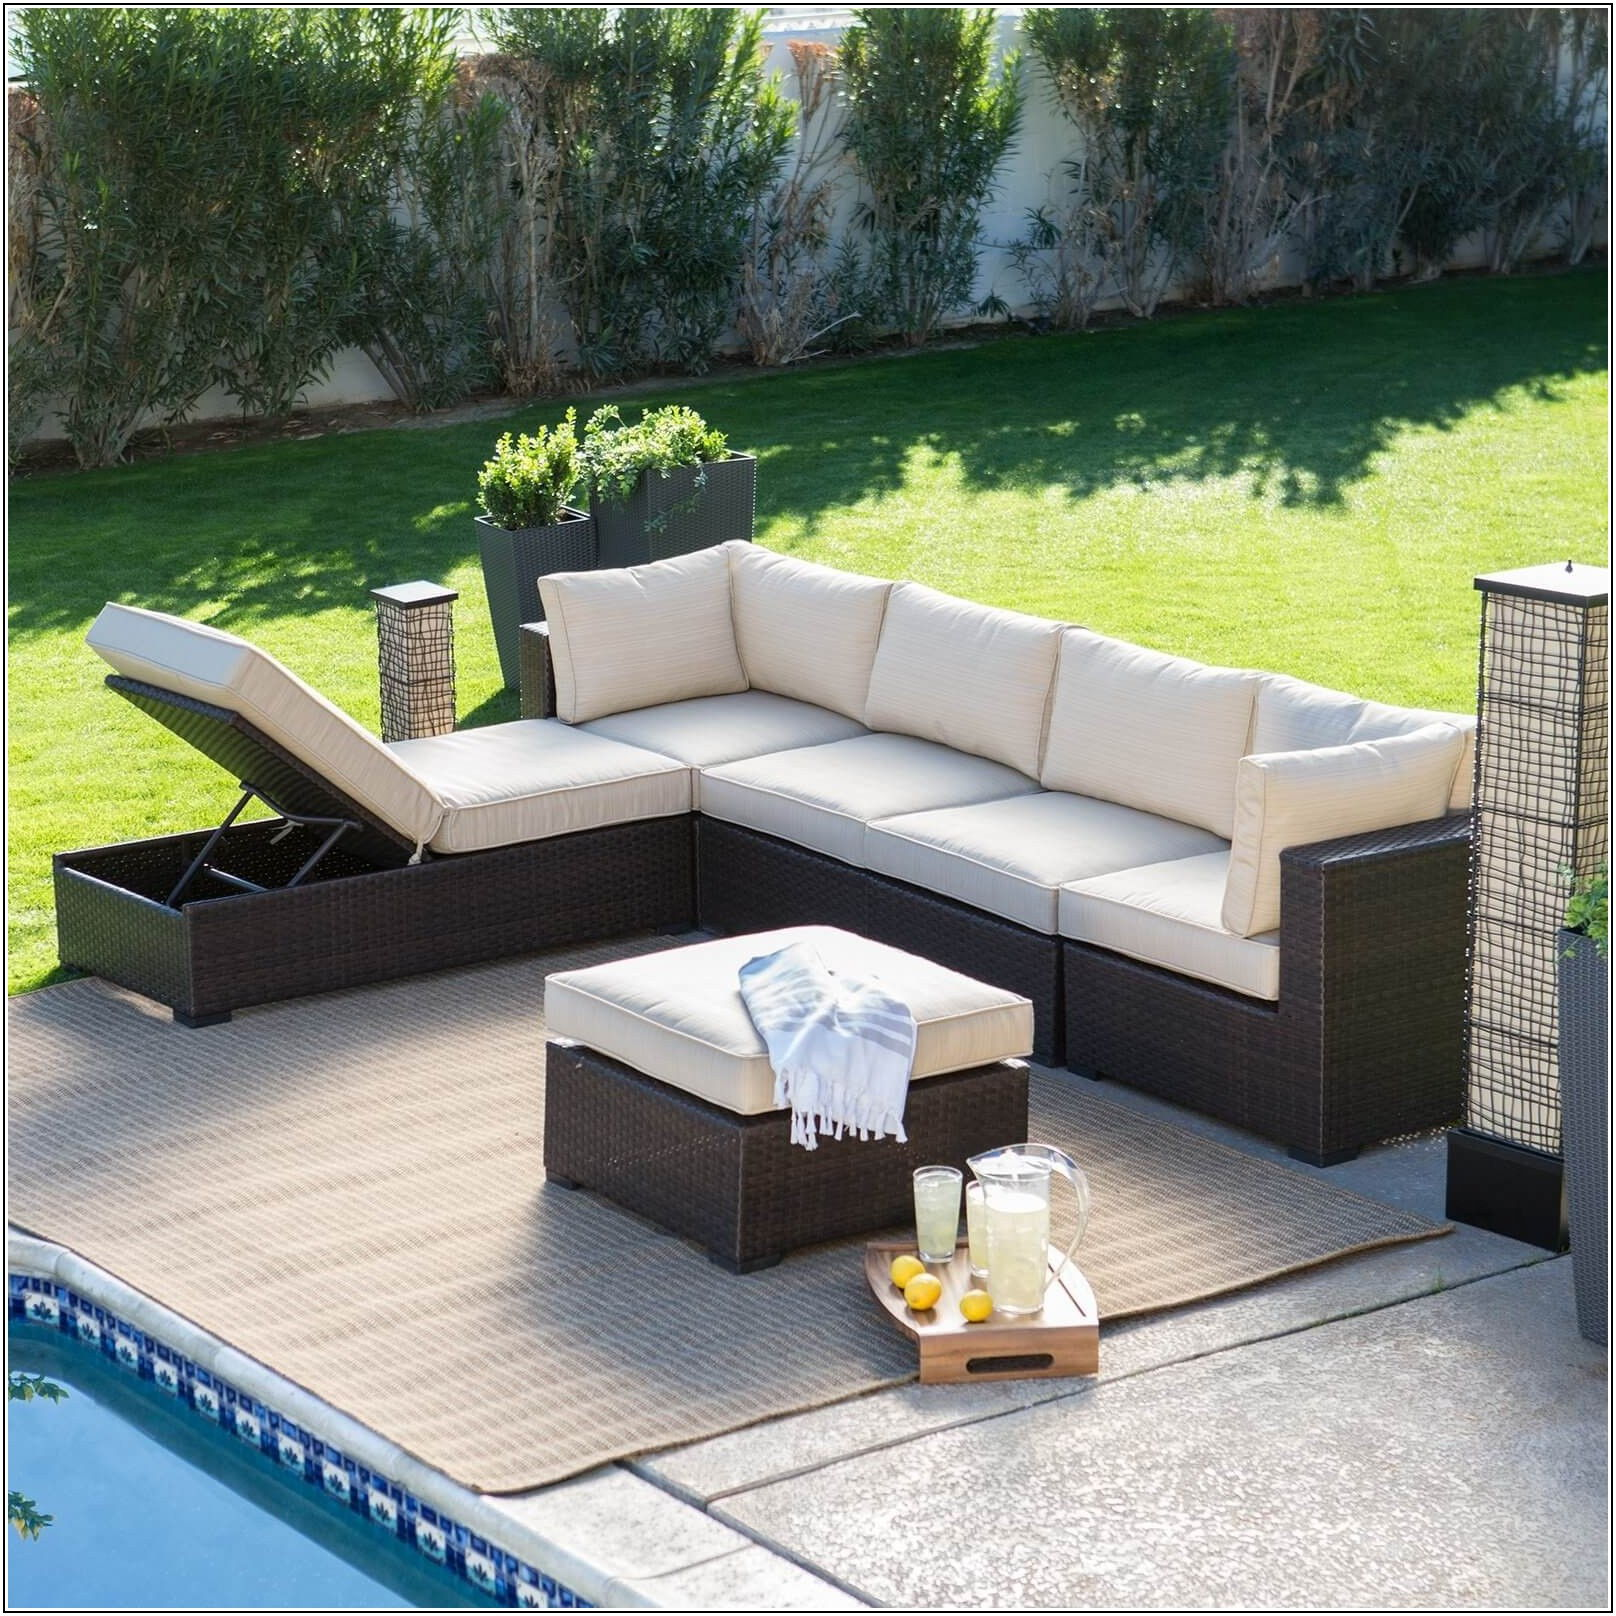 Outdoor Patio Sectional Sofa